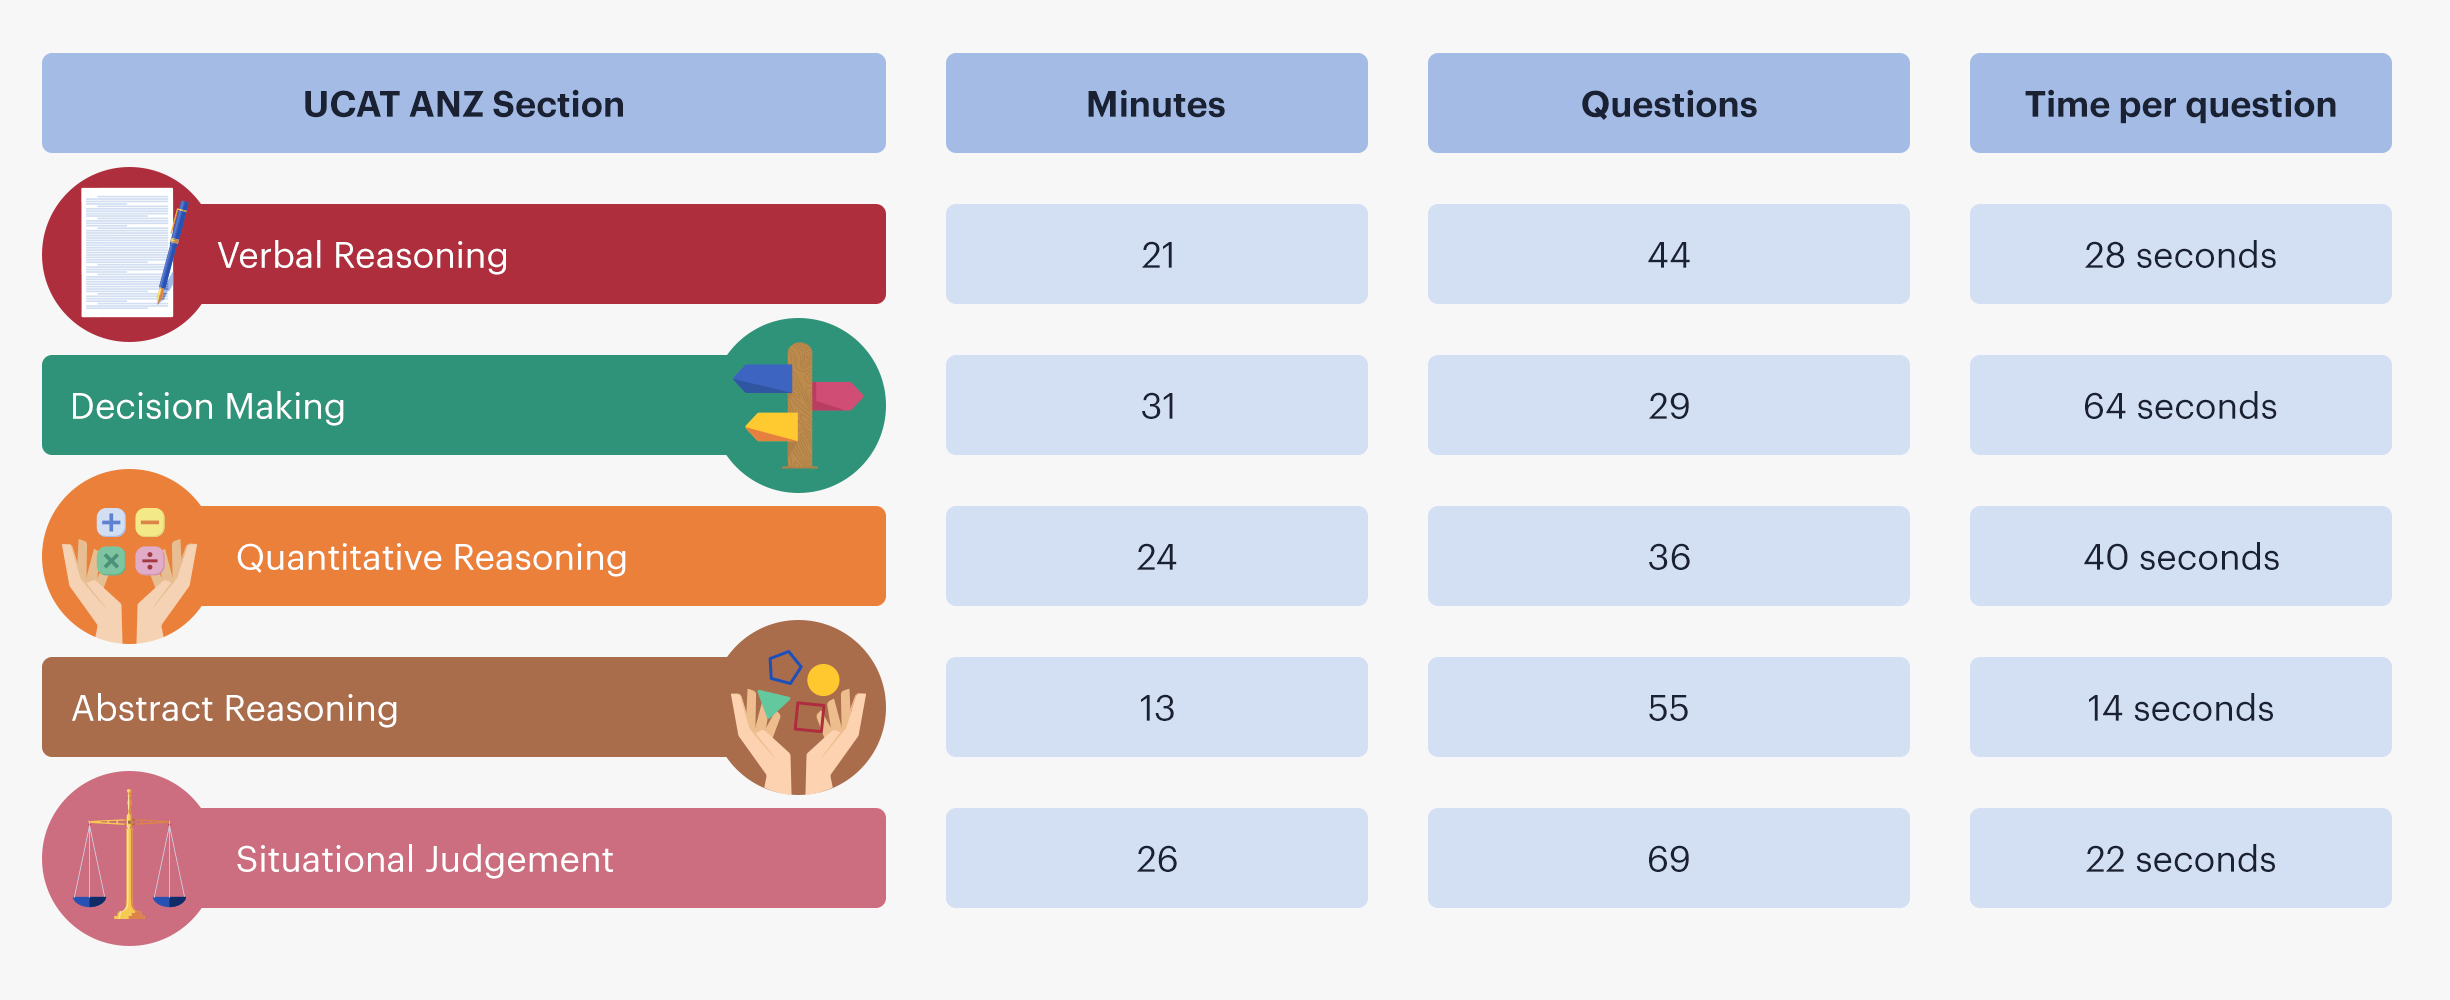 A table showing how much time per question a student has for each section of the UCAT ANZ